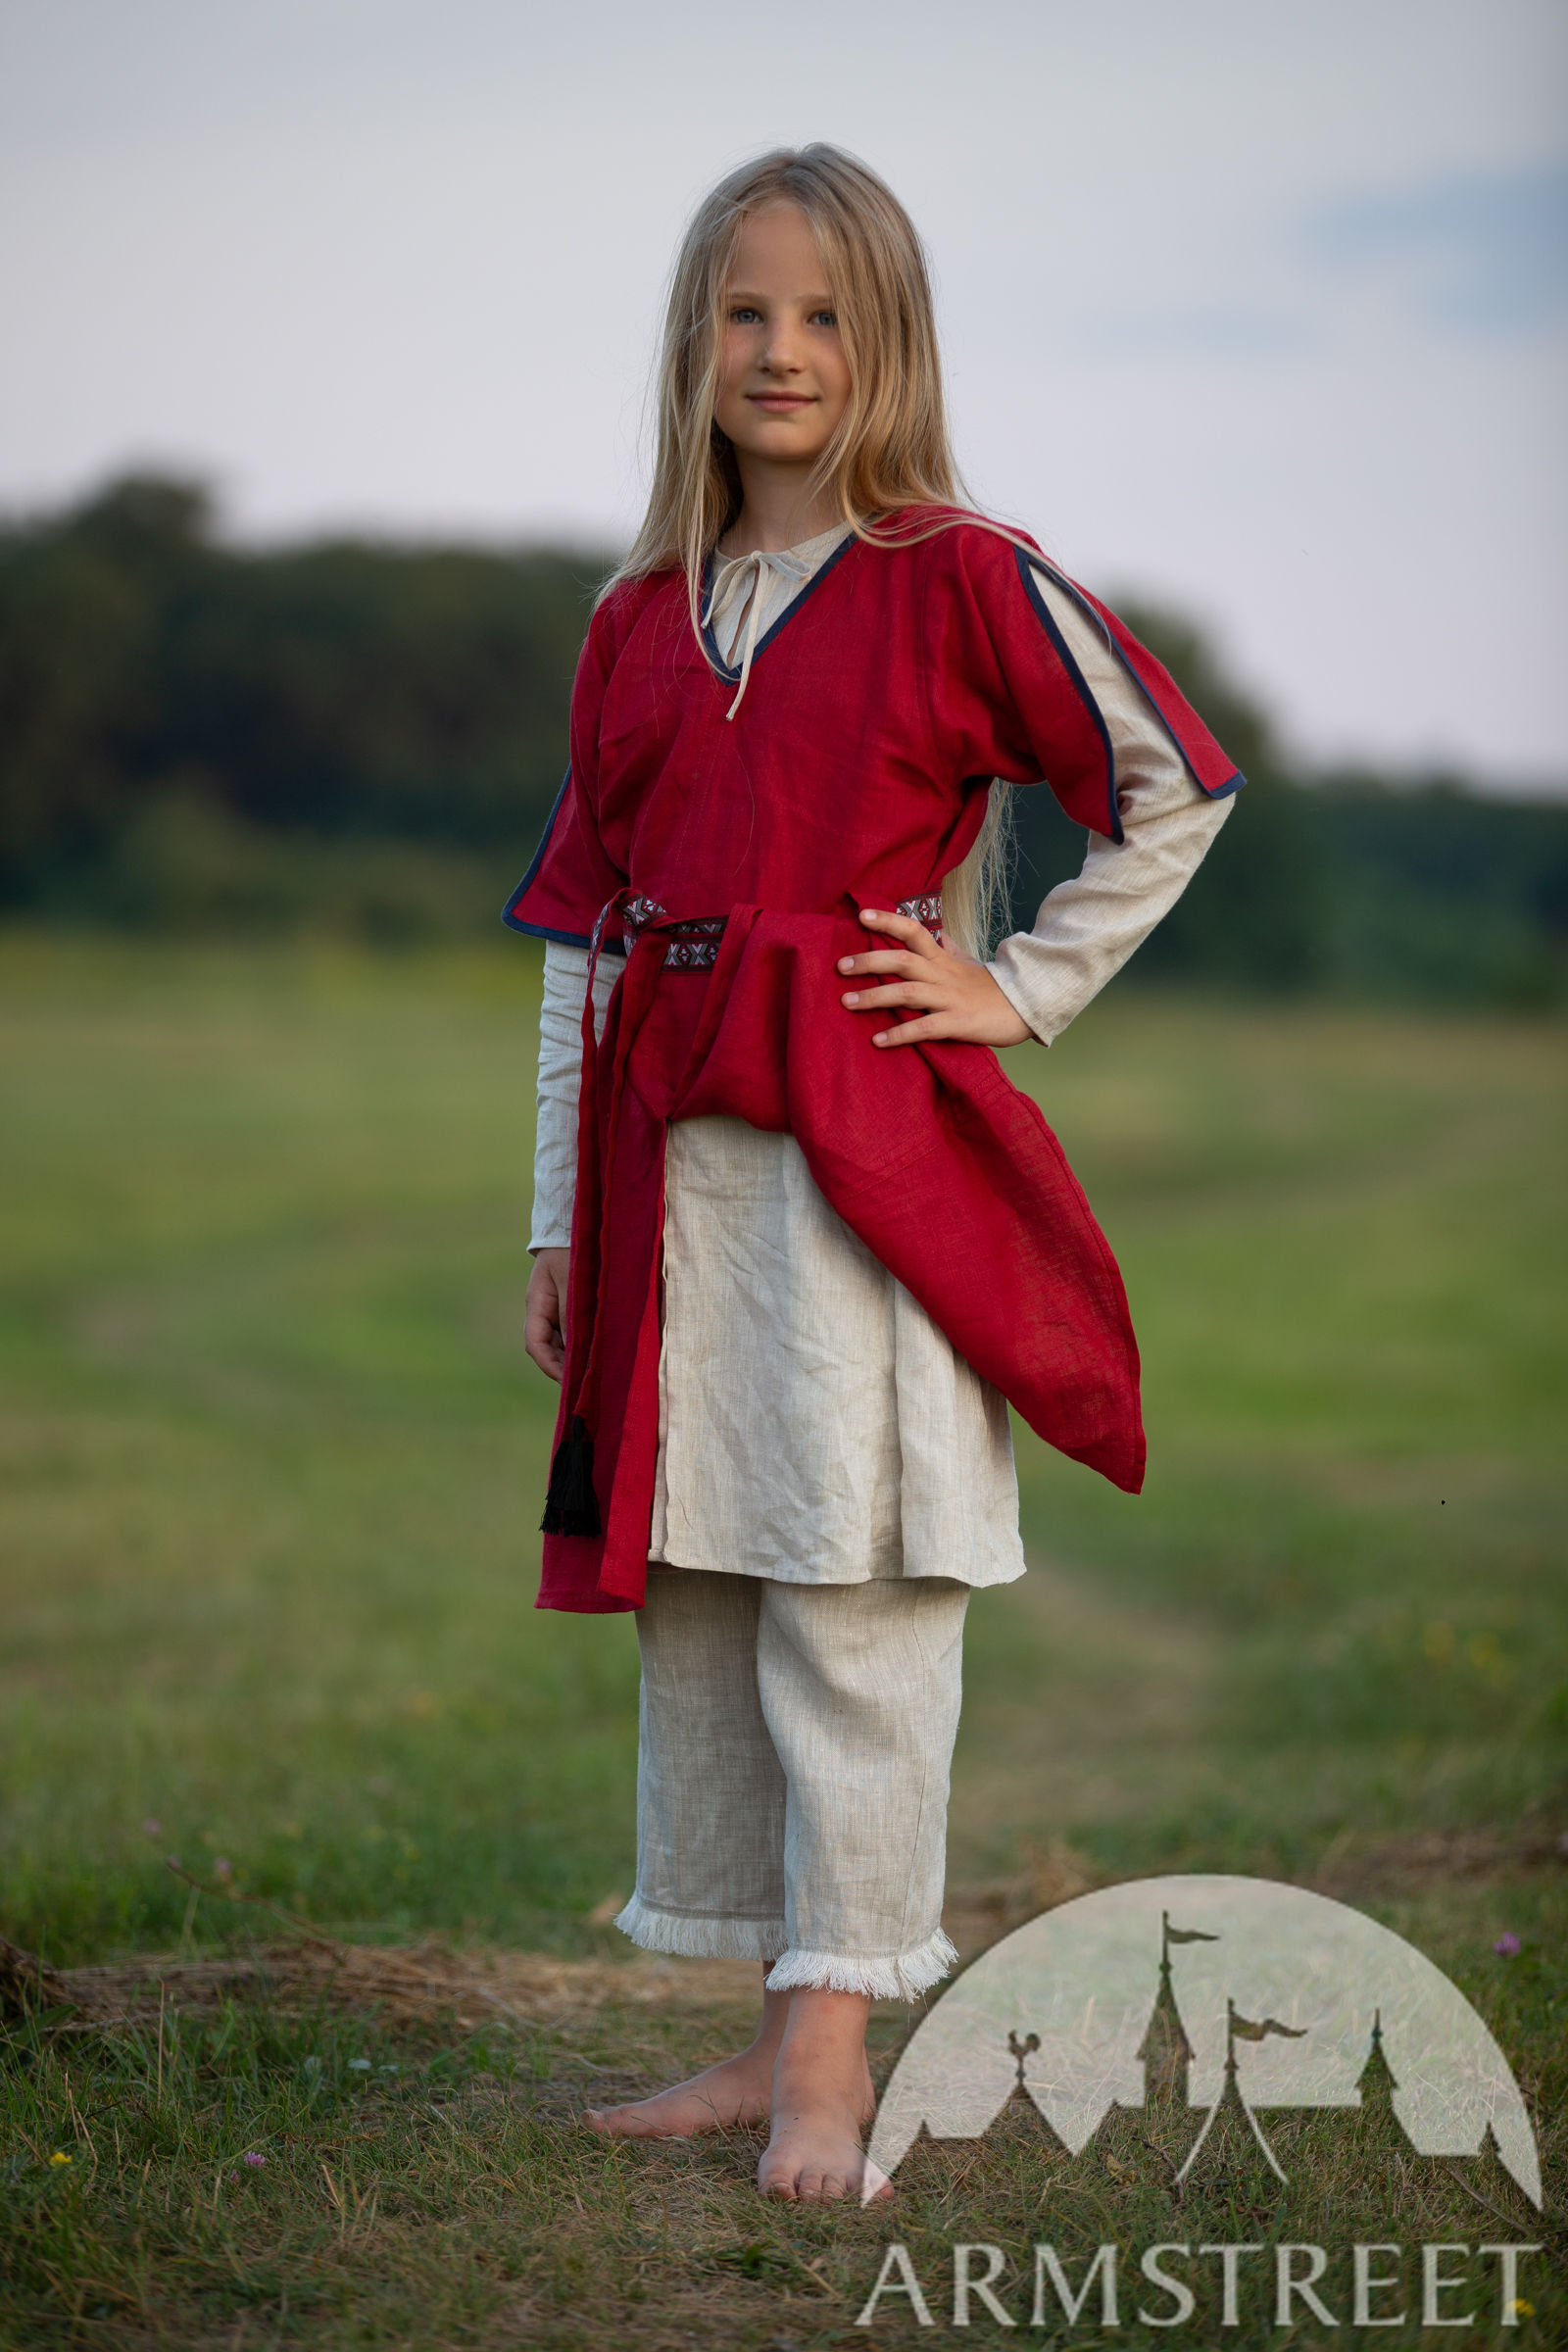 https://armstreet.com/catalogue/full/childrens-linen-tunic-with-contrasting-border-first-adventure-9.jpg